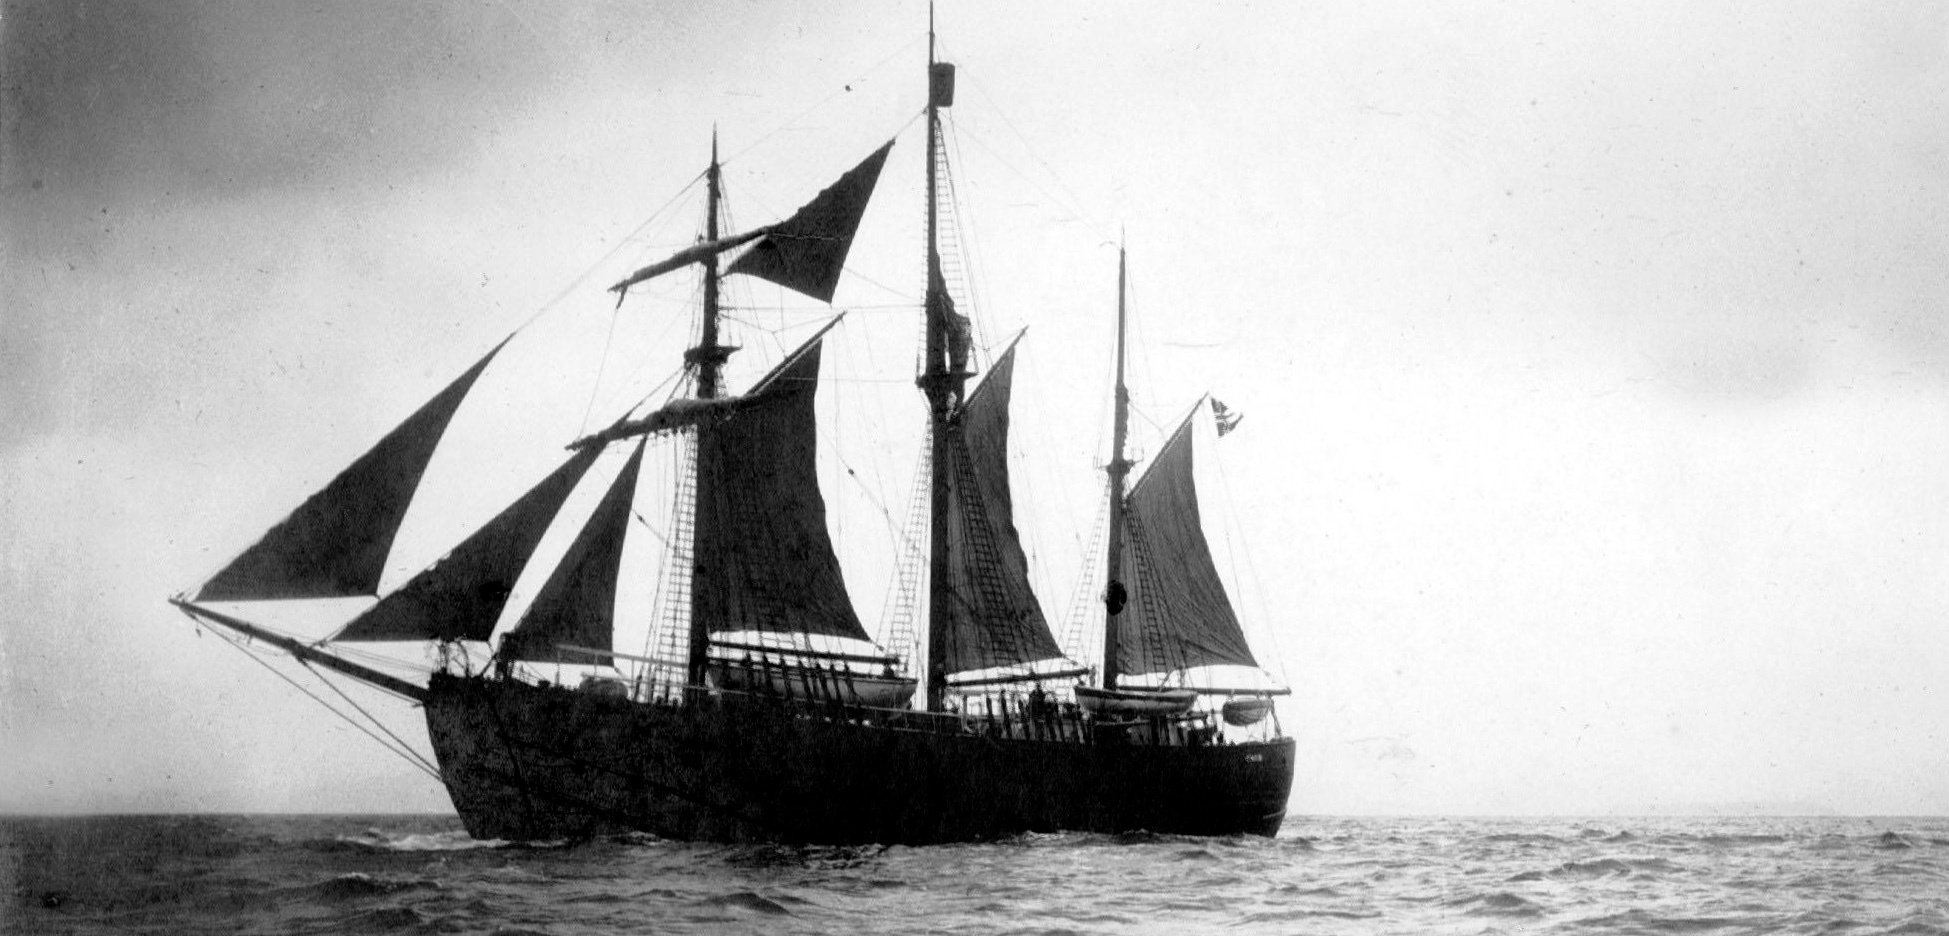 Norwegian explorer Fridtjof Nansen's ship, Fram